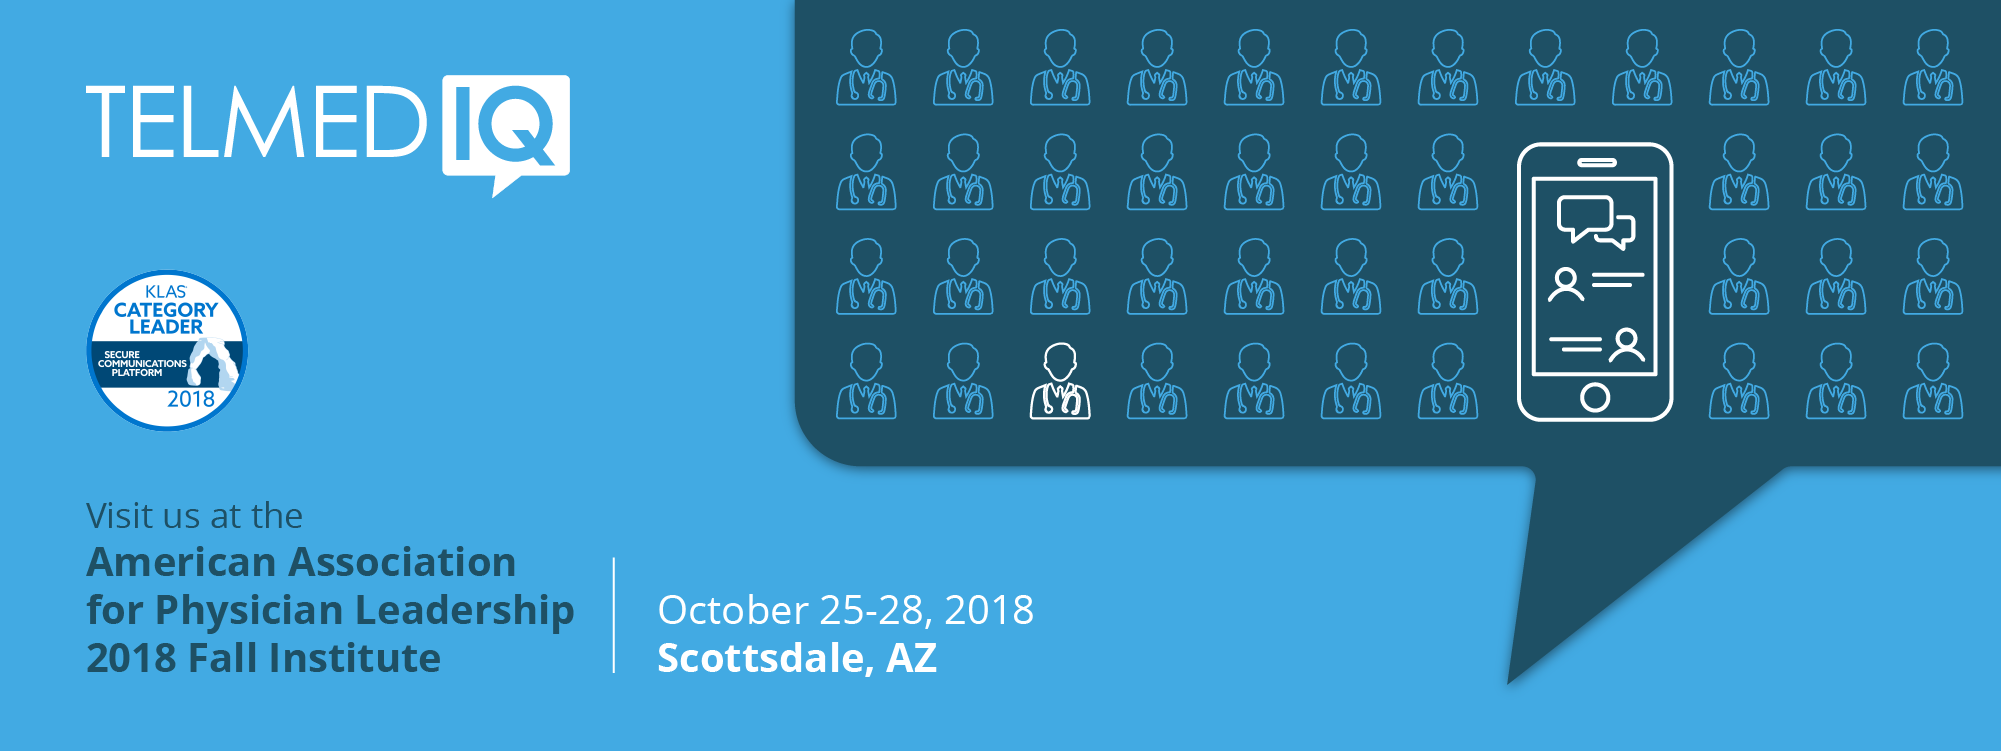 American Association for Physician Leadership 2018 Fall Institute